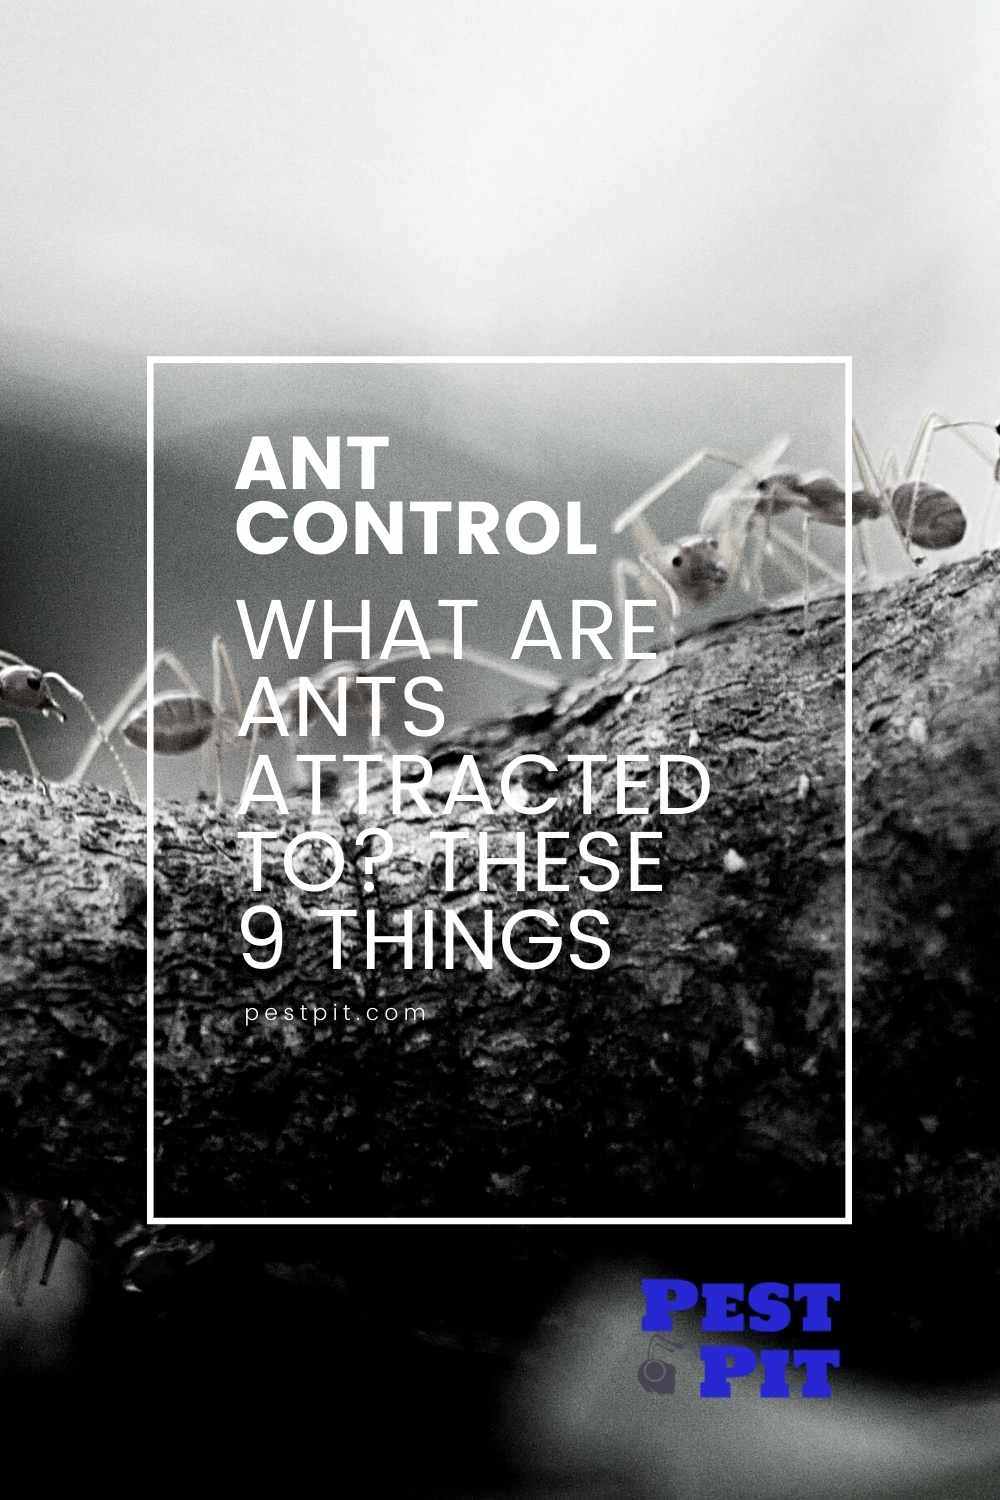 What Are Ants Attracted To These 9 Things